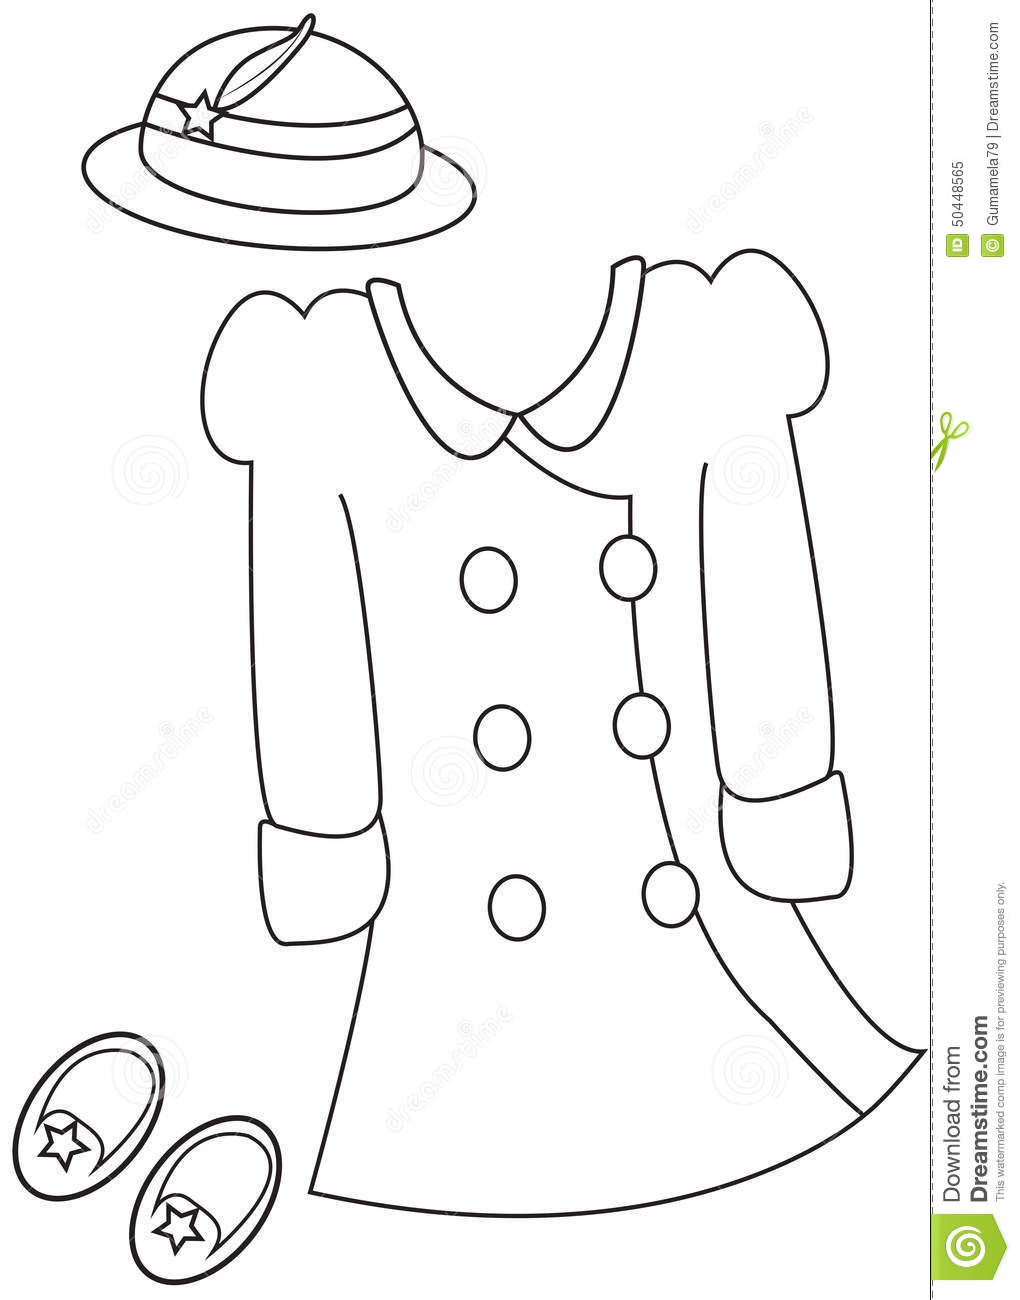 you design it house plans with Stock Illustration Girl S Clothes Coloring Page Useful As Book Kids Image50448565 on Simple House Drawing Kids Zoneinteriordesign besides Finch Bird House Plans Beautiful Best 25 Building Bird Houses Ideas On Pinterest likewise El Anti Star System Glenn Murcutt moreover Property 35007373 moreover Stock Image Old Town Cityscape Street Sketch Historic Building House Pedestrian European City Tower Background City Image37418641.